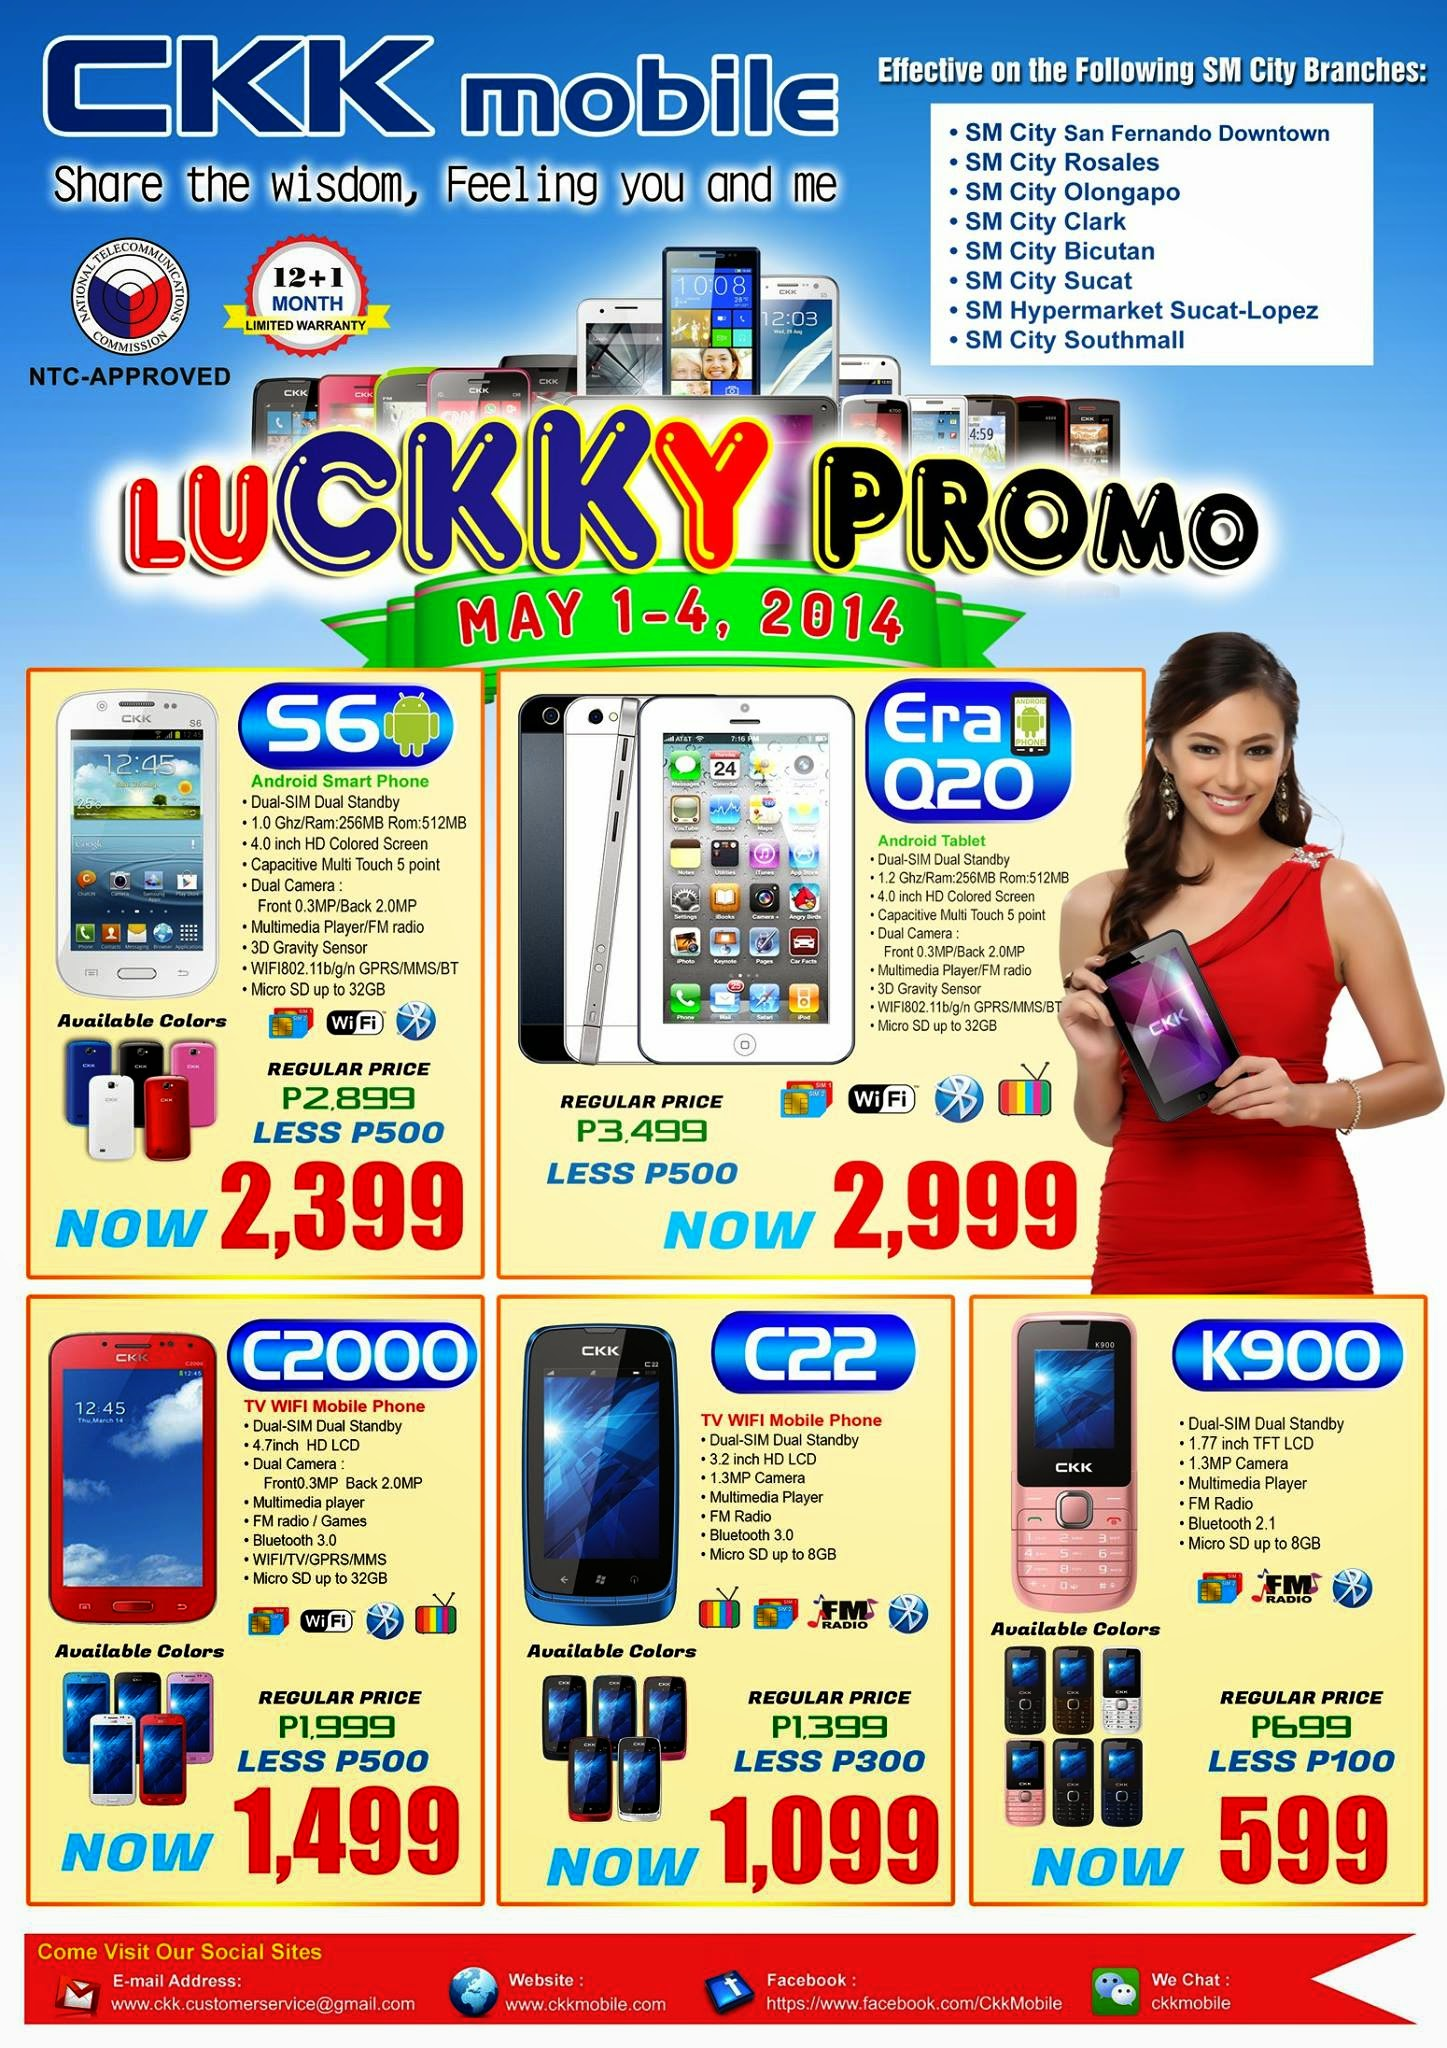 CKK Mobile LuCKKy Promo Sale for May 2014